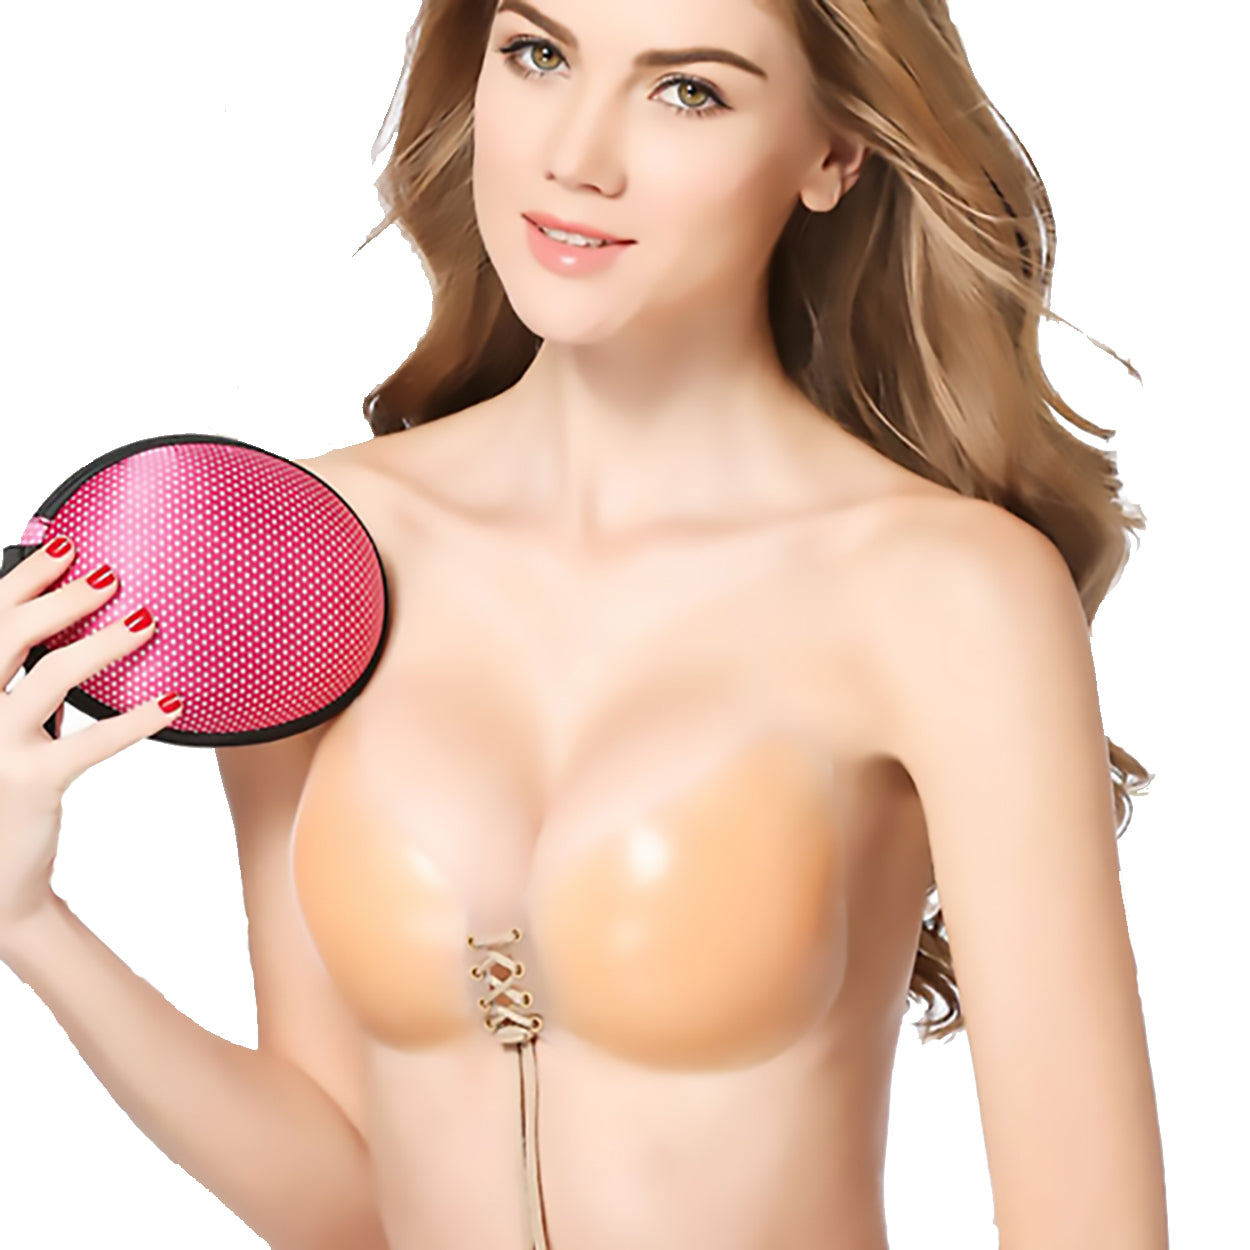 Bradazzle - Adhesive Water-proof Silicon Pull-String Strapless Bra Nude Color